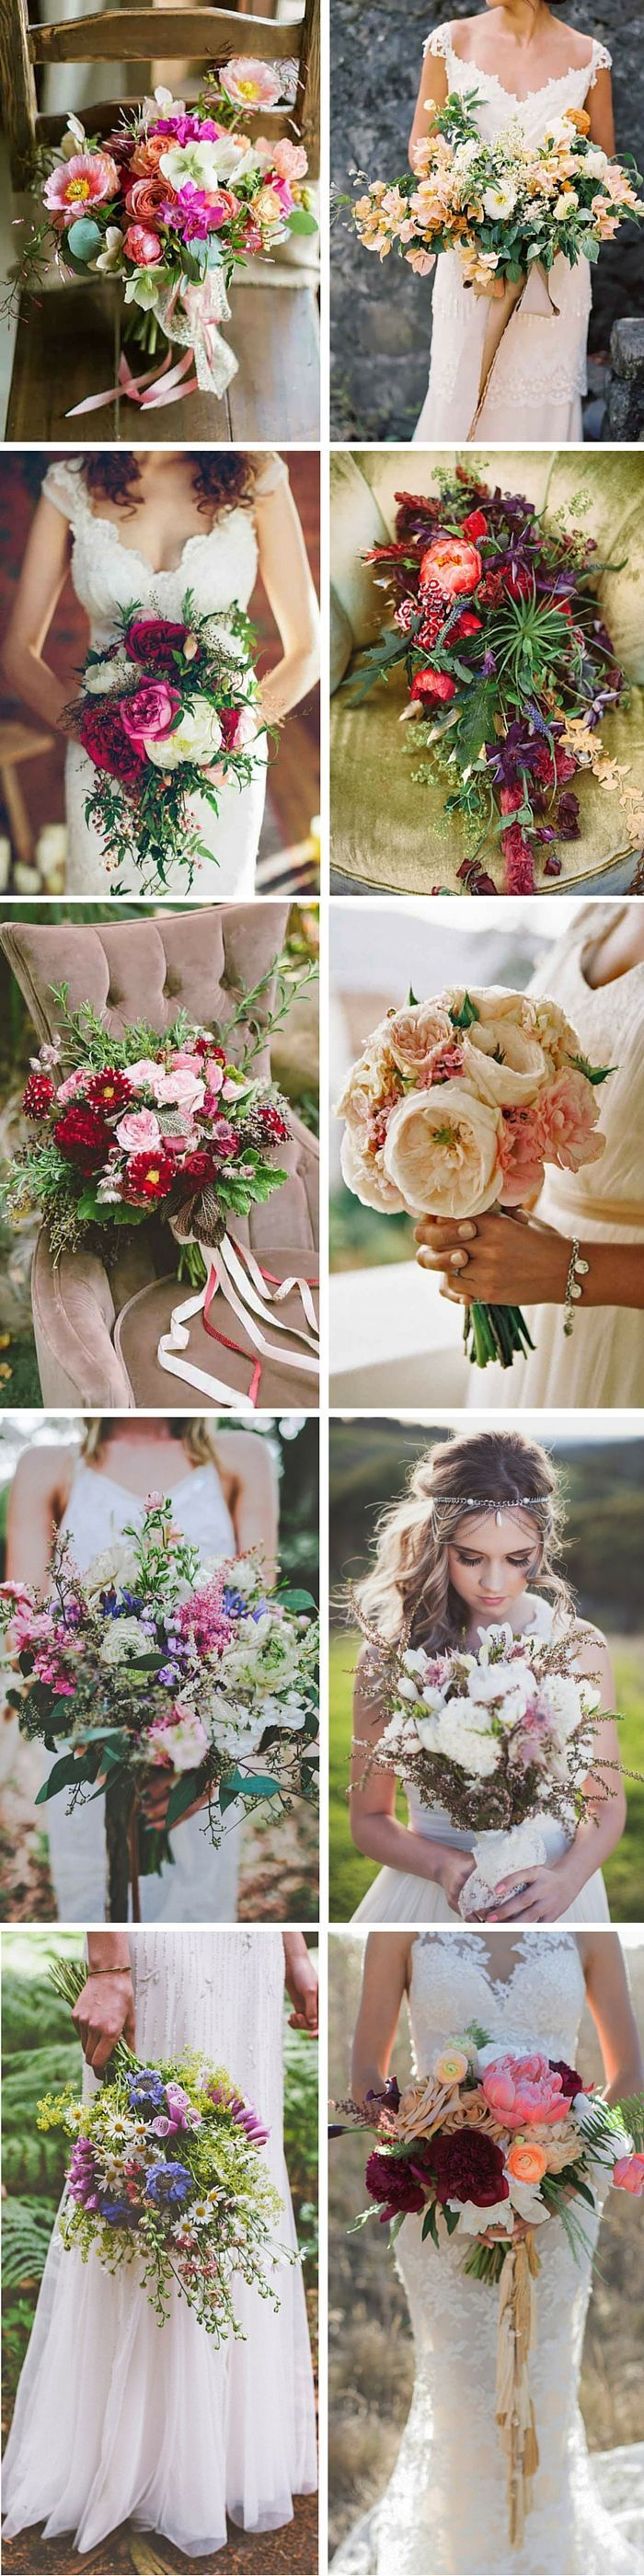 18 Bohemian Wedding Bouquets  ❤ Bohemian chic wedding bouquets are full of whimsical details, wild flowers and feathers. See more: http://www.weddingforward.com/bohemian-wedding-bouquets/ #weddings #bouquets